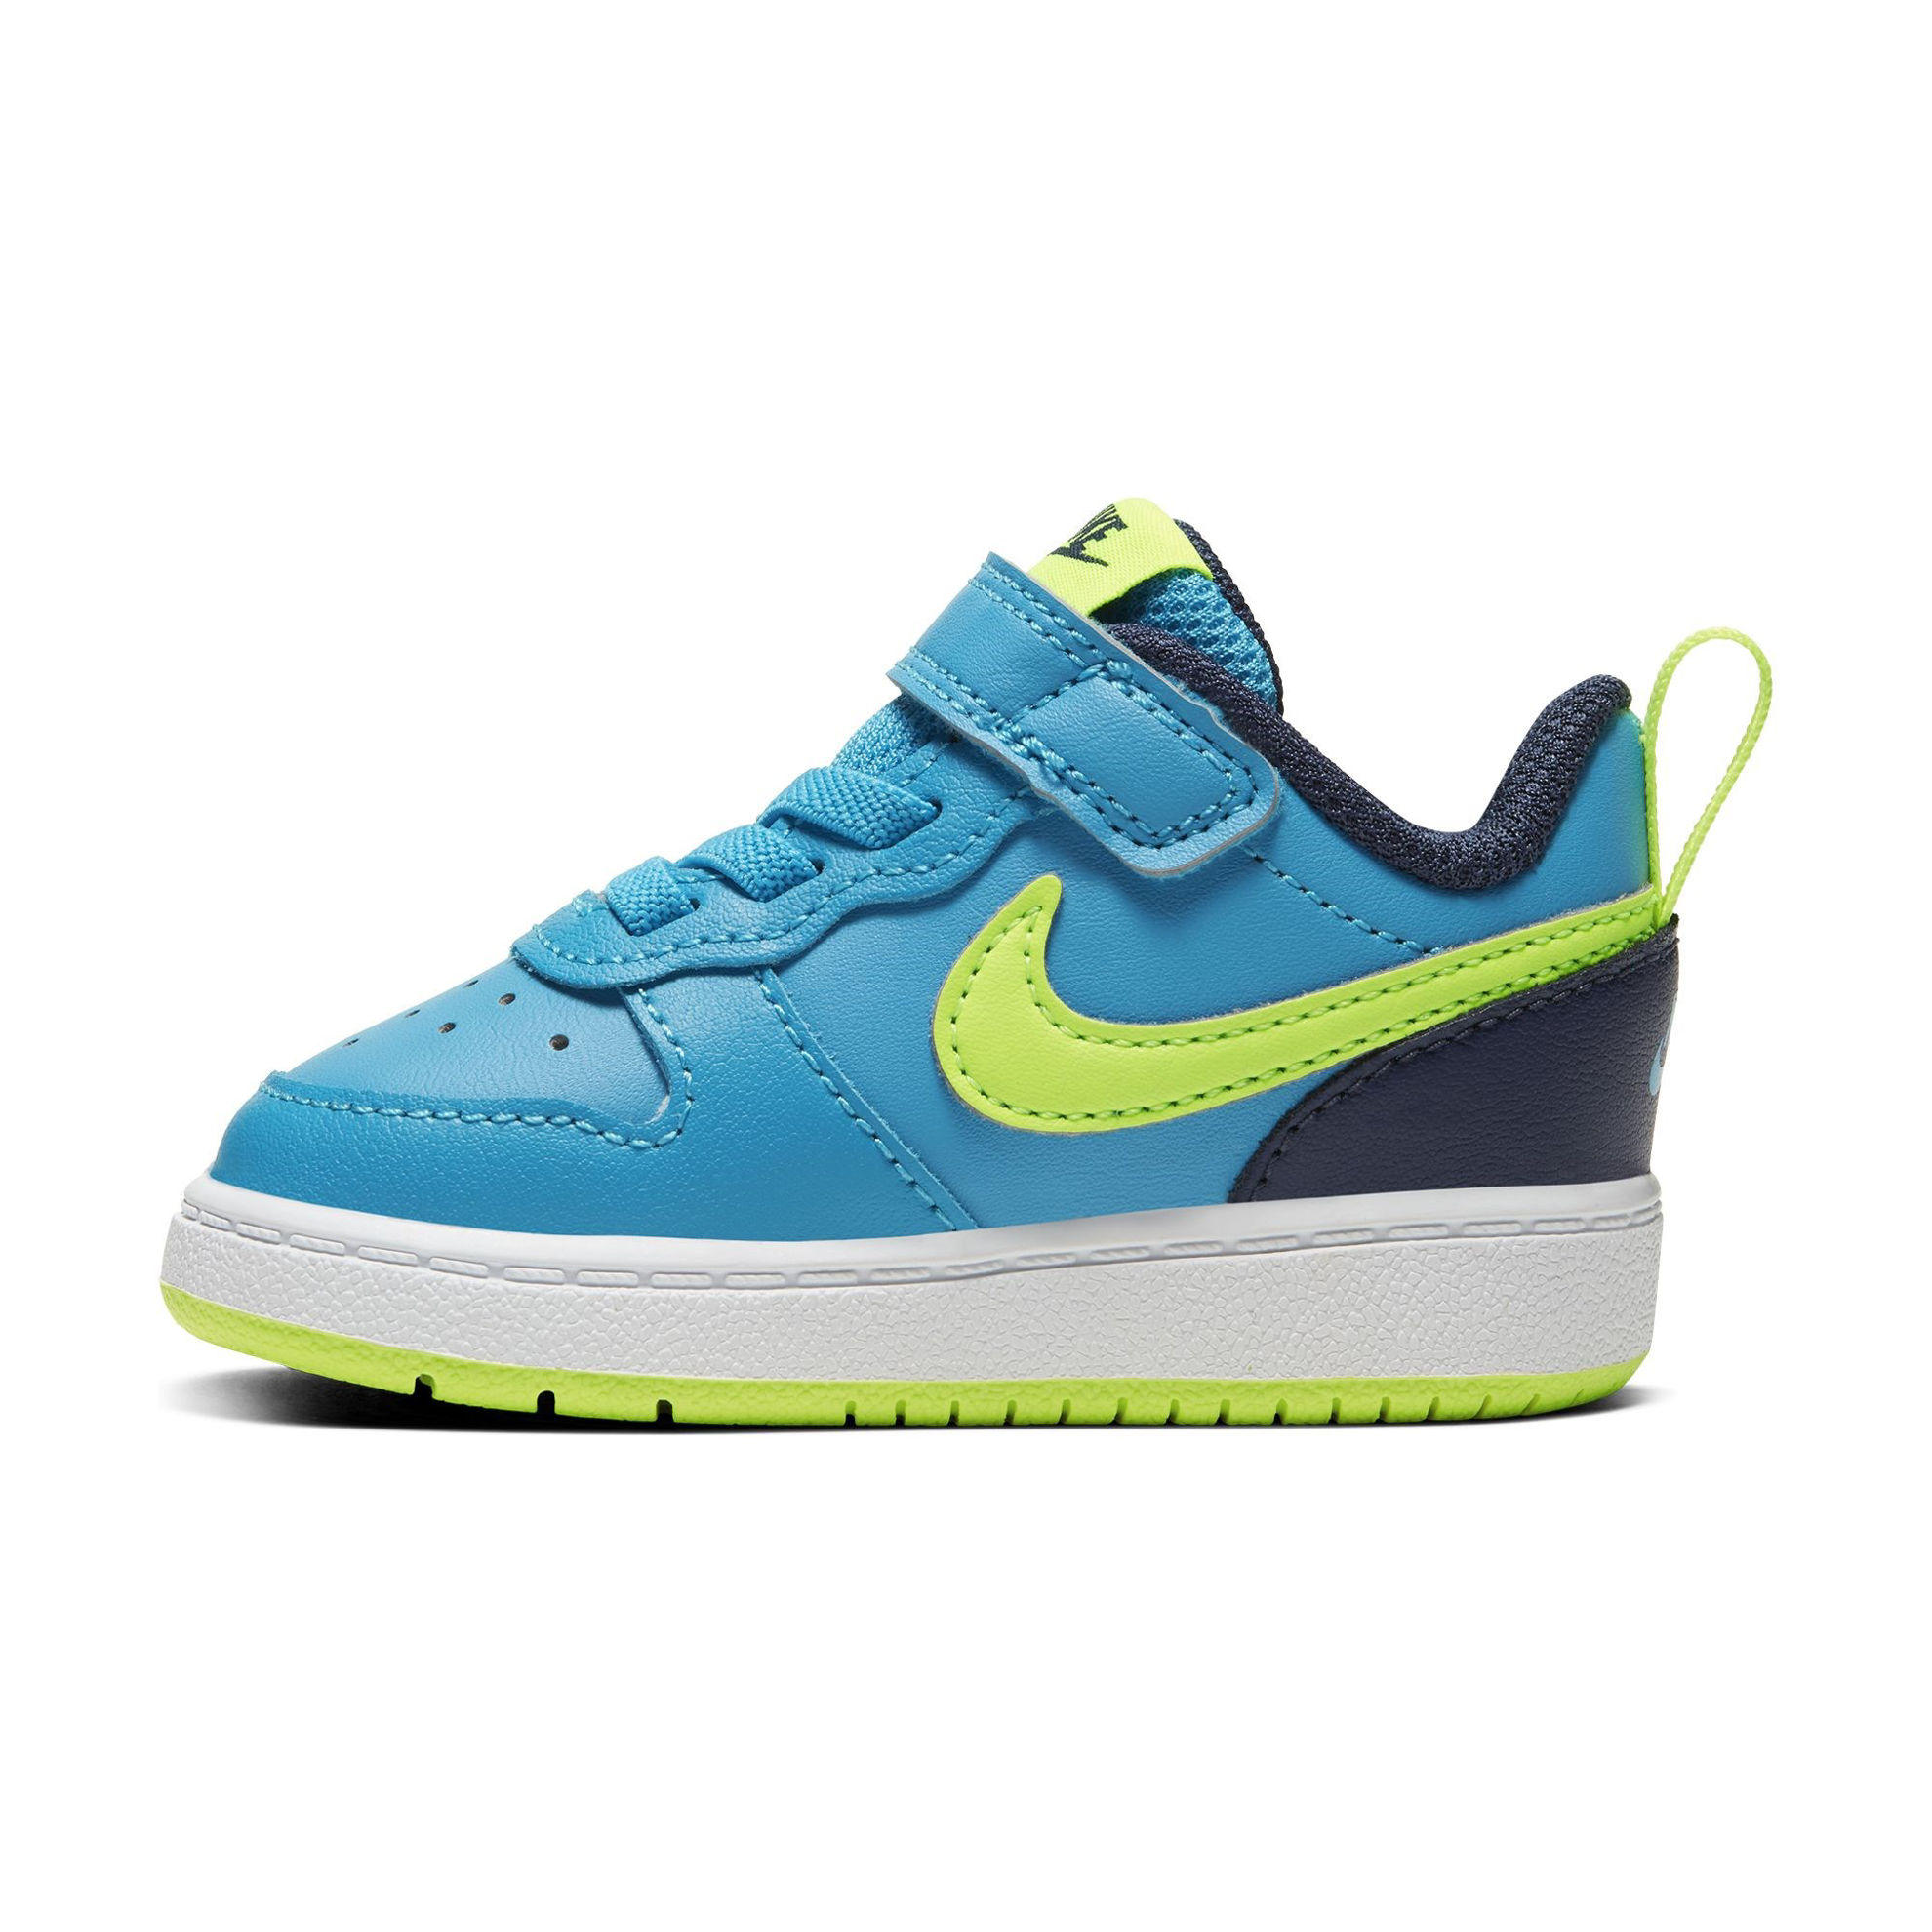 Immagine di NIKE - SCARPA COURT BOROUGH LOW 2 TD 4-10 BL-LE